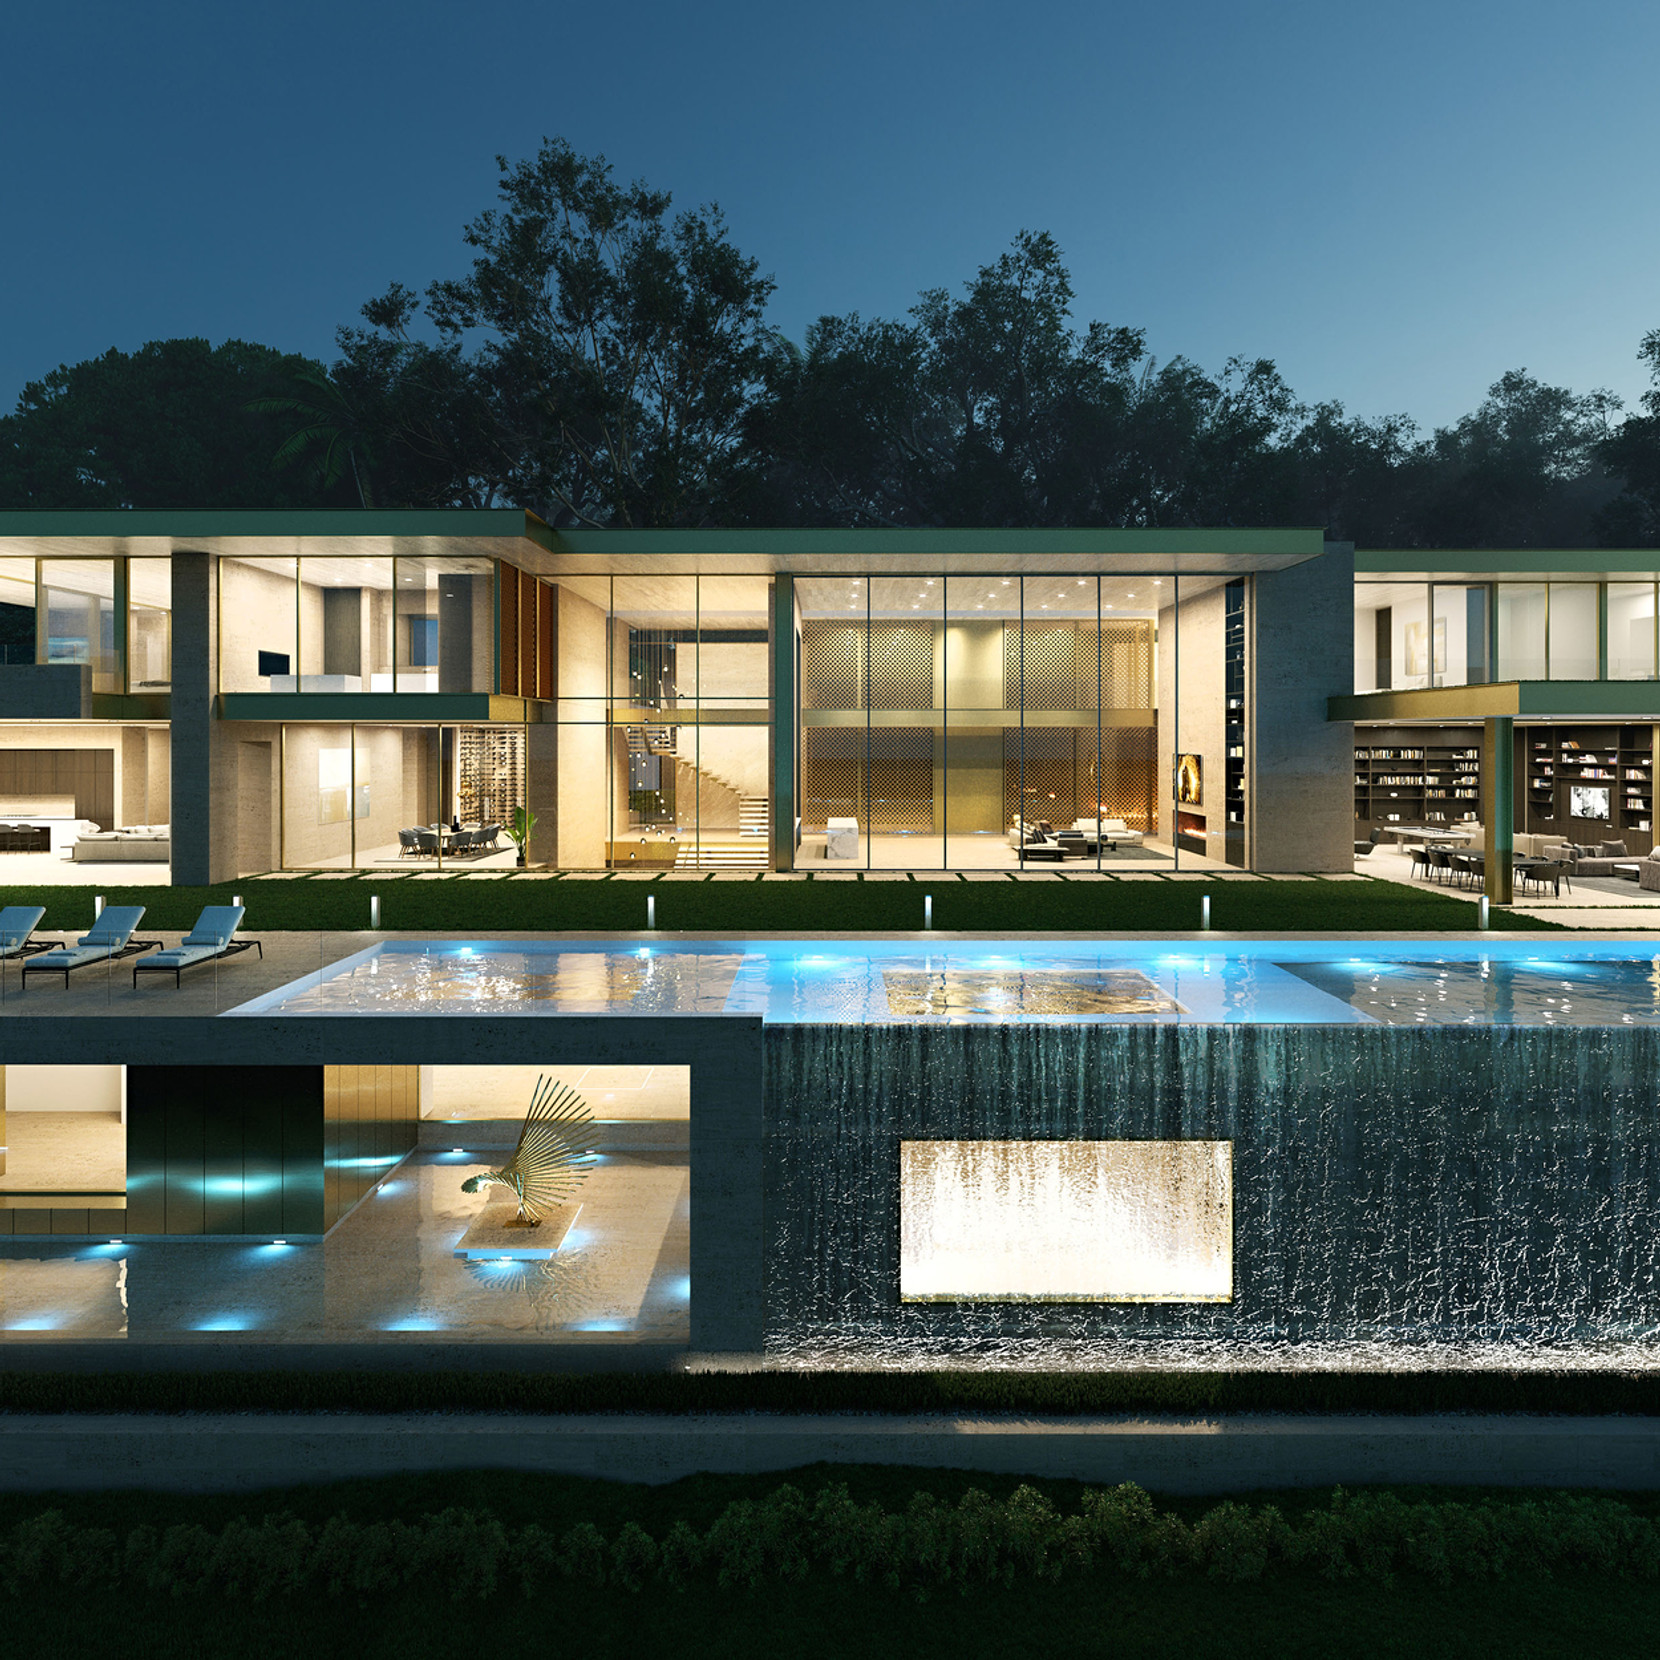 LUXURY VILLA NIGHT VISUALIZATION